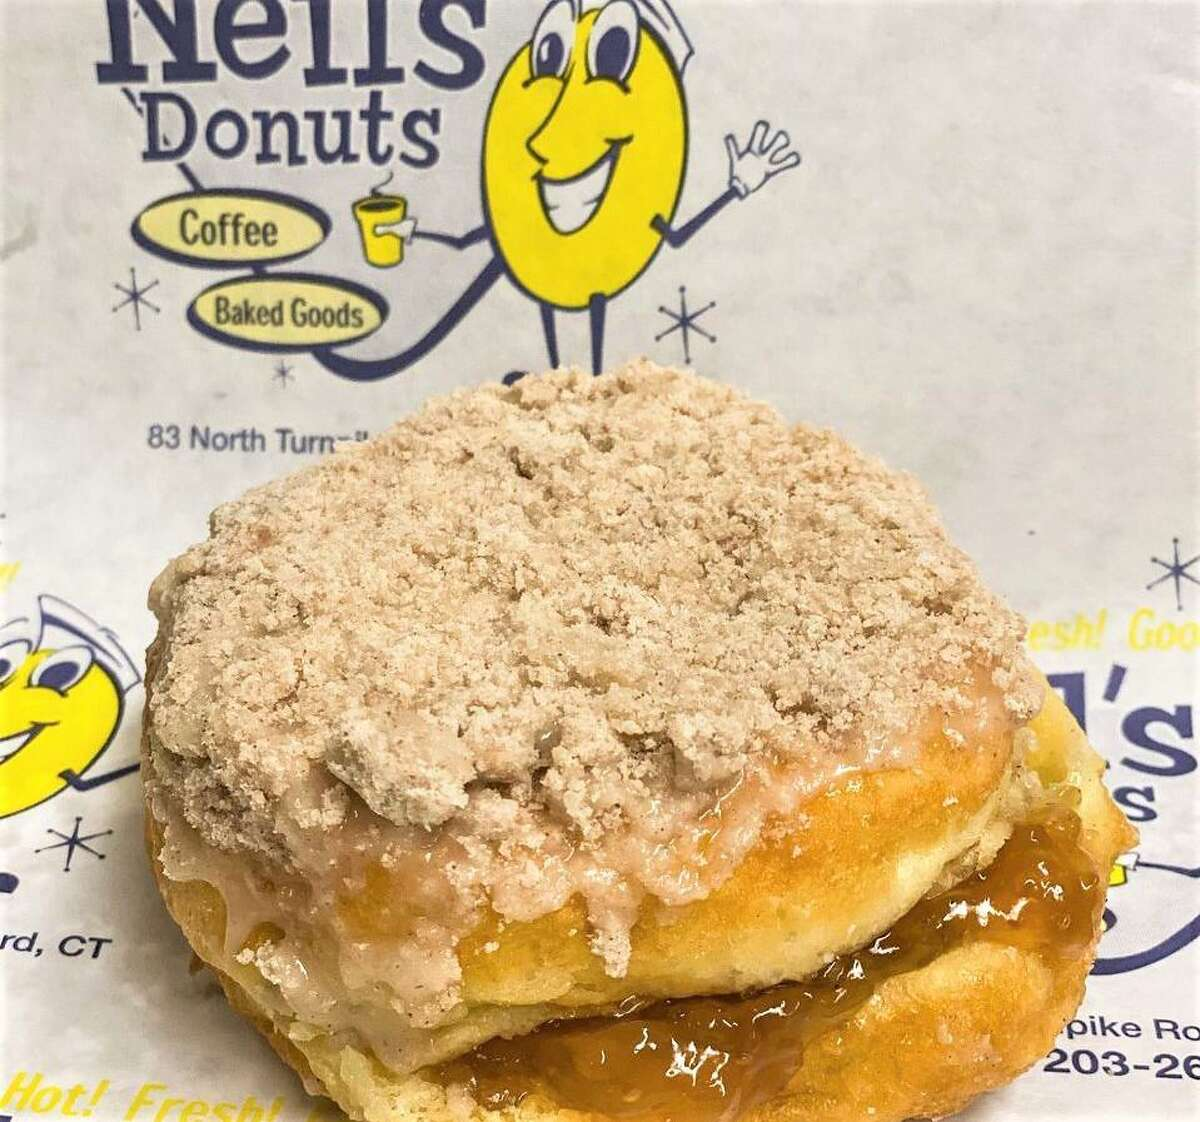 Neil's Donuts has been named the best Connecticut doughnut by Food & Wine magazine.